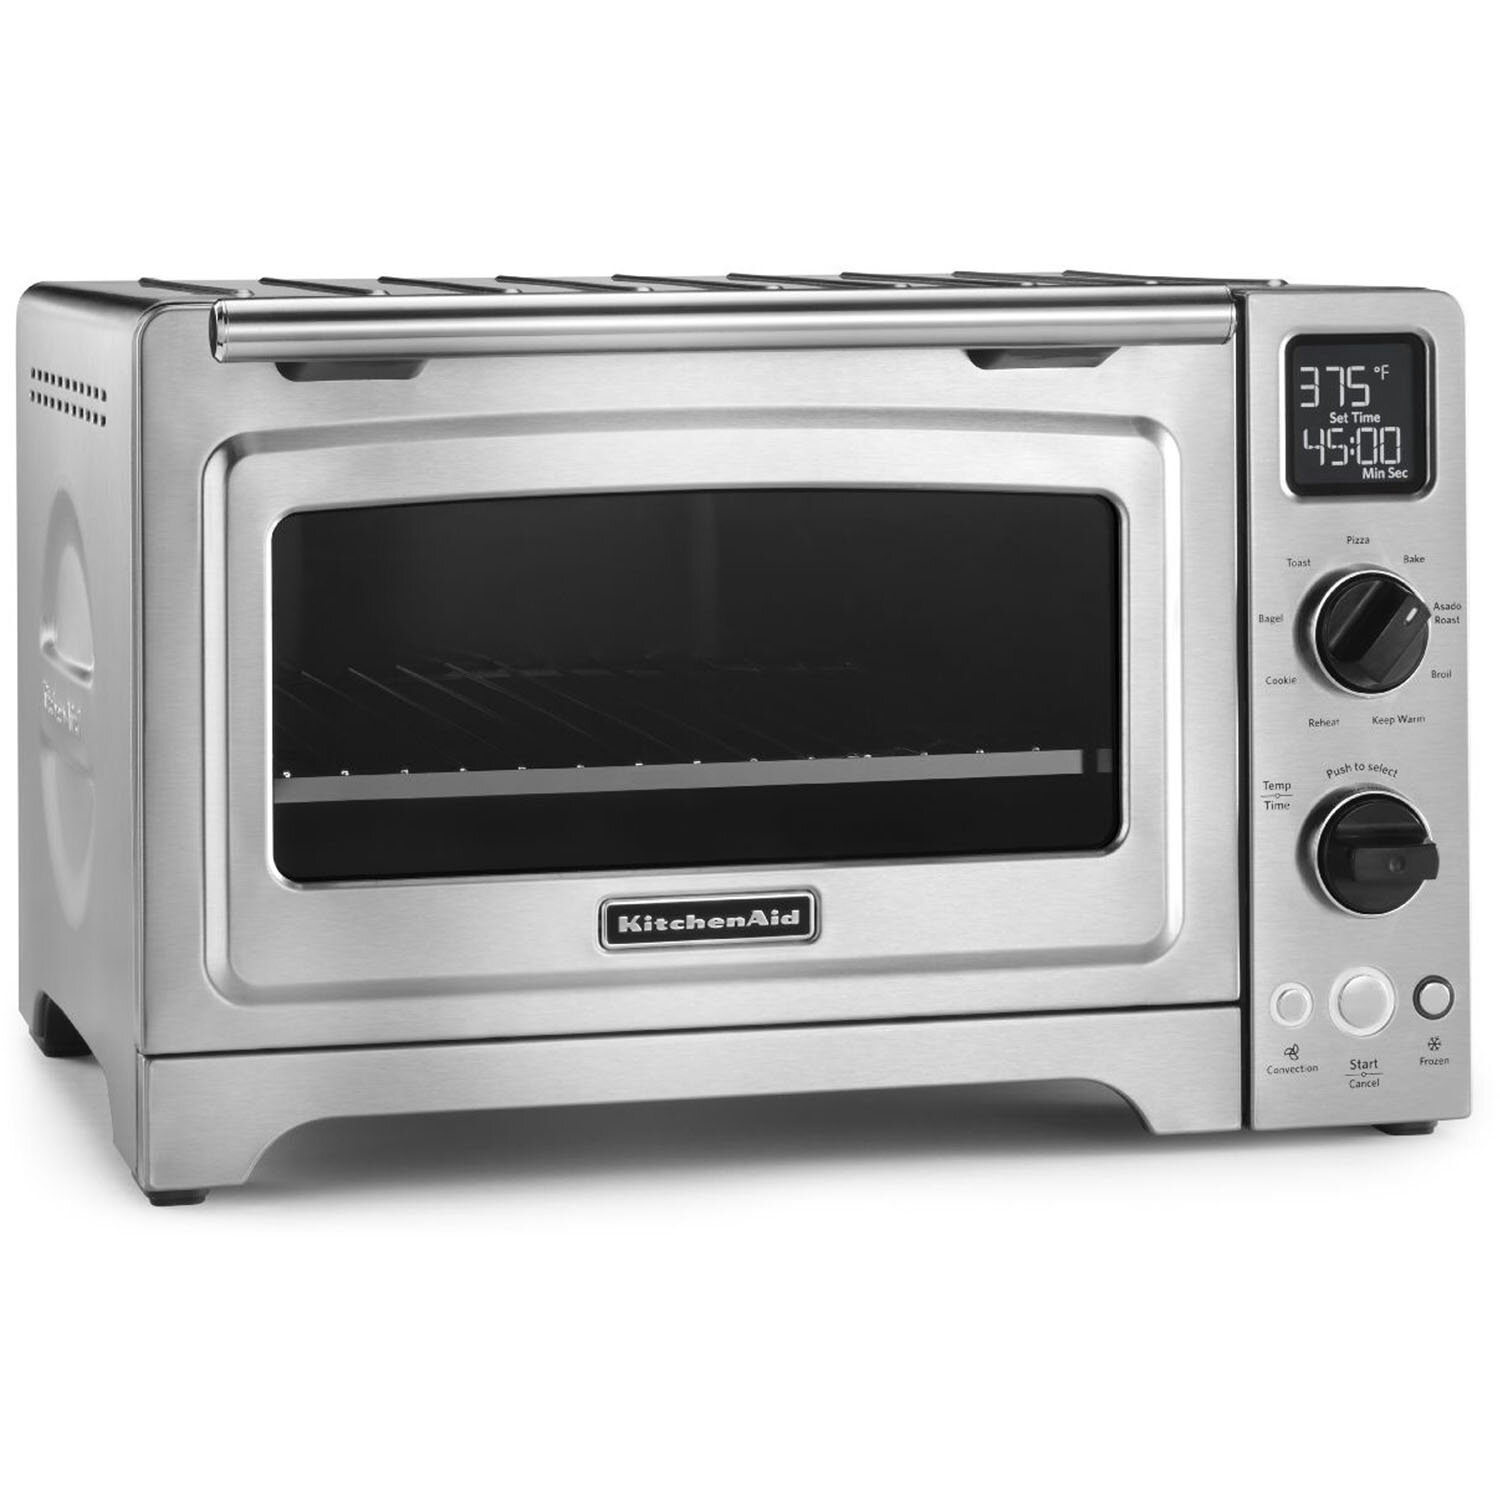 convenient oven options cu convection ho microwaves homeappliances countertops forhome models ft black web microwave countertop steel stainless